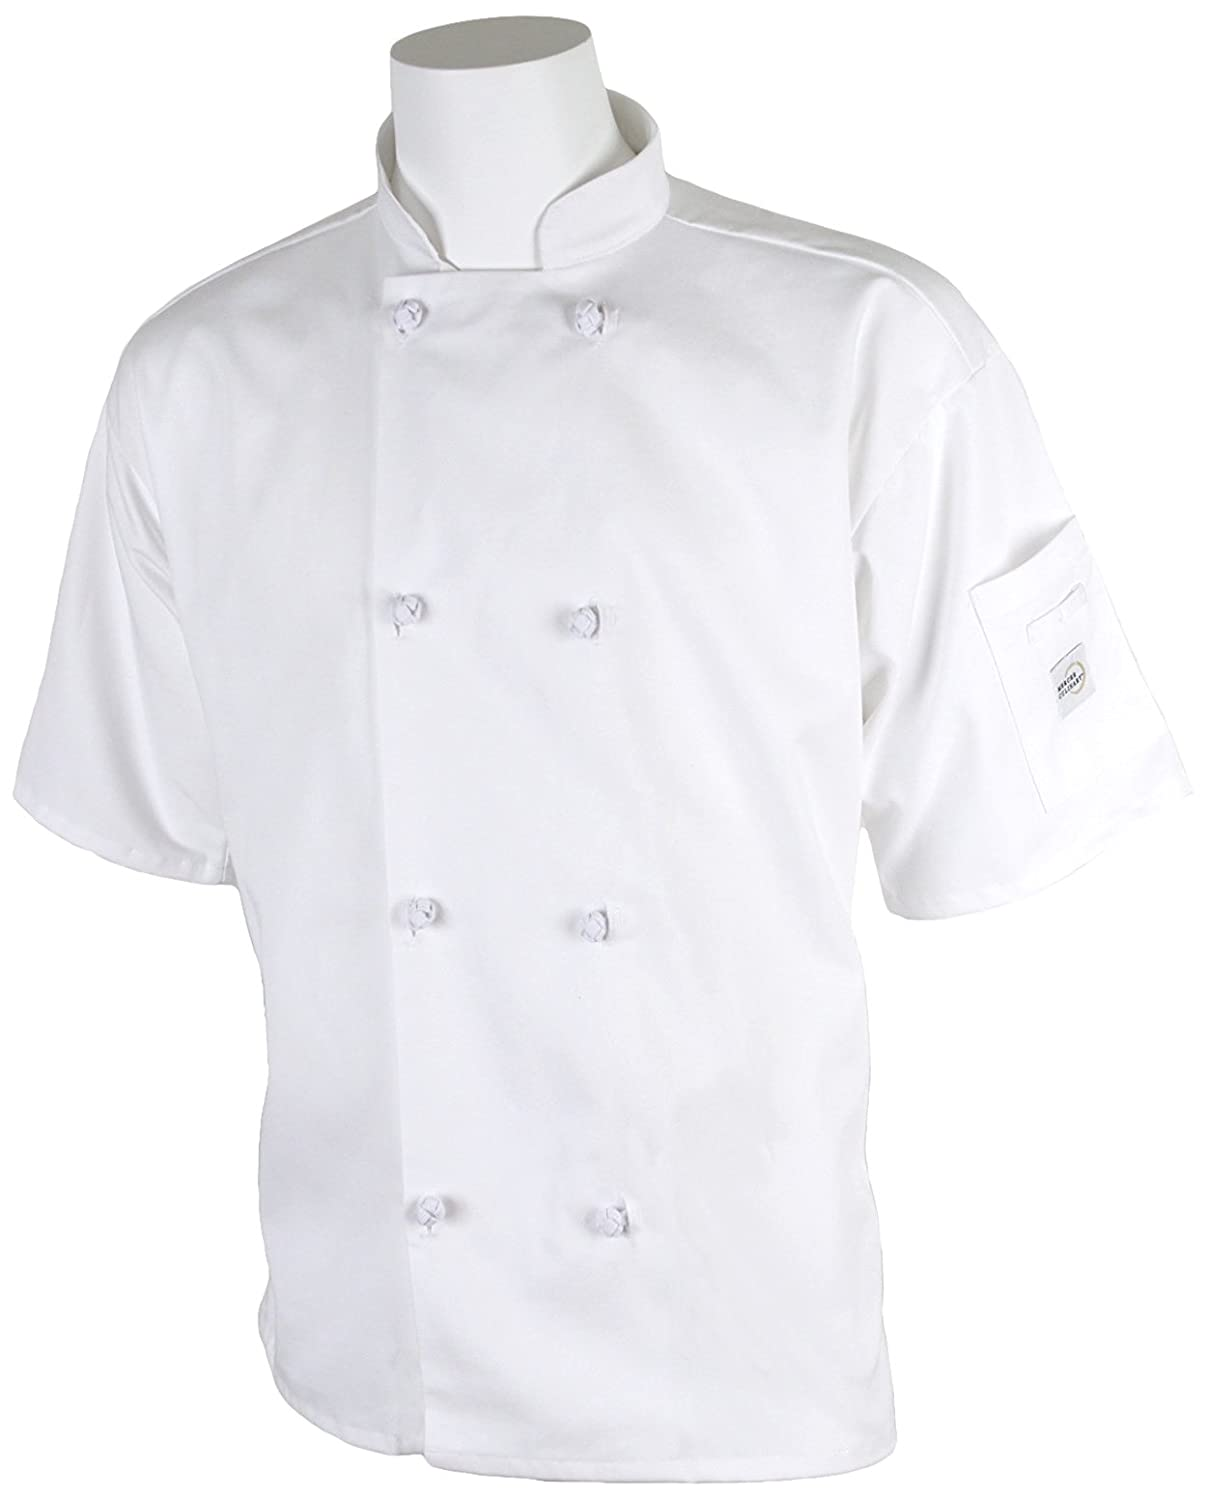 Mercer Culinary M60014WHM Millennia Men's Short Sleeve Cook Jacket with Cloth Knot Buttons, Medium, White